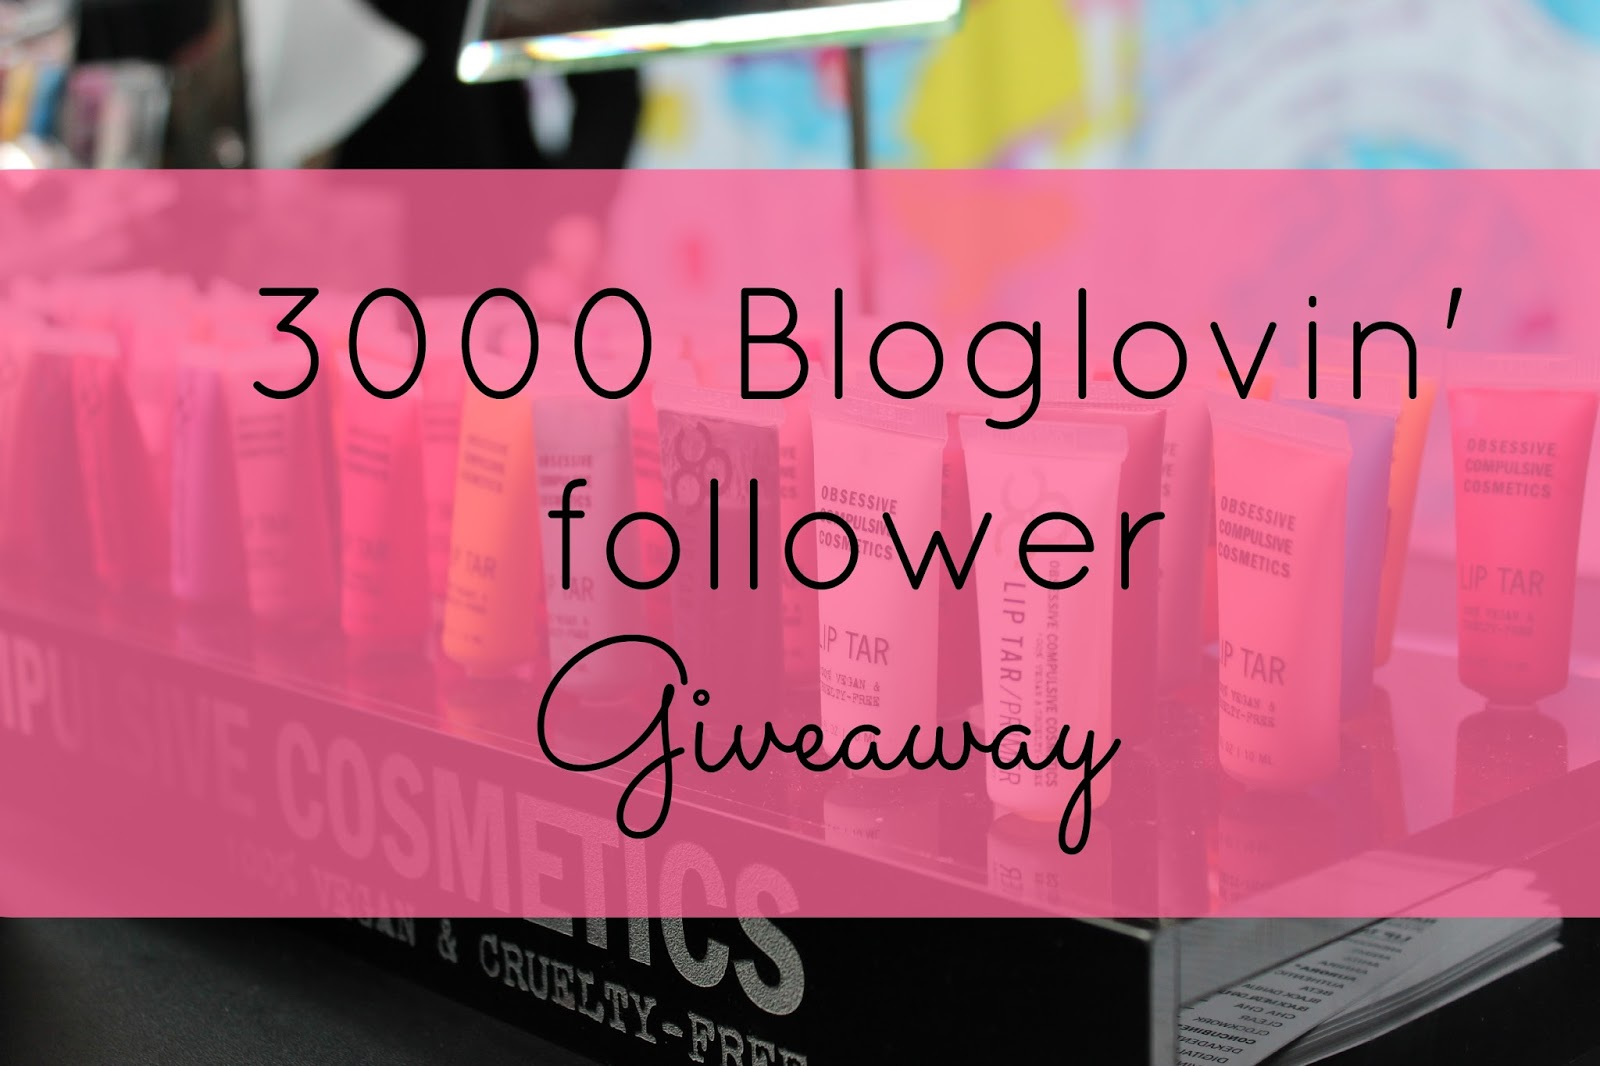 3000 bloglovin follower giveaway